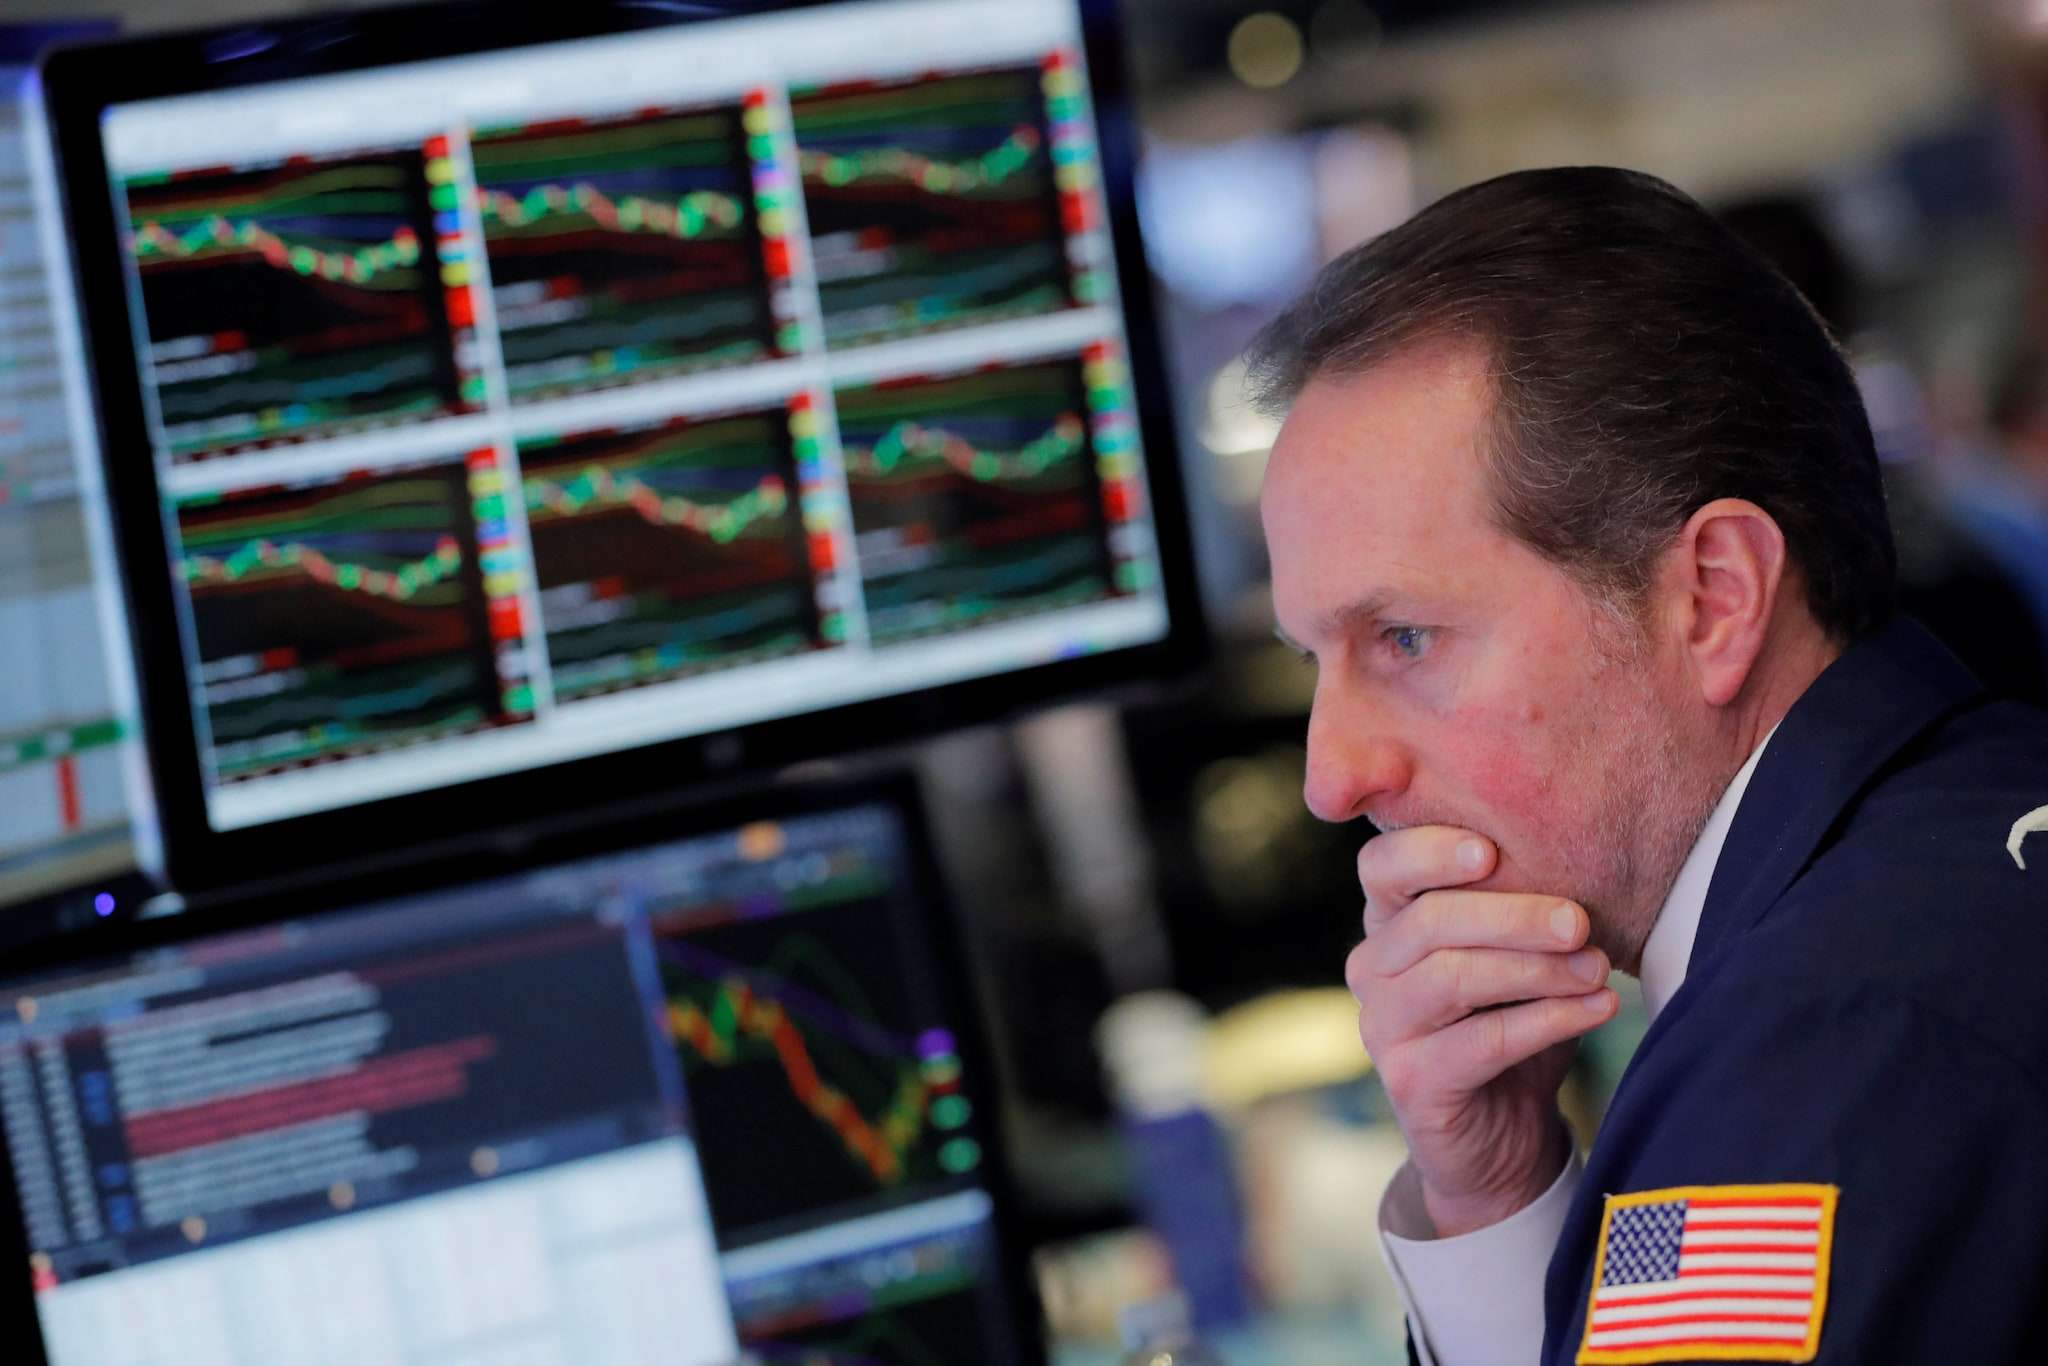 2. US: US stocks dipped on Friday, as the S&P 500 snapped a three-day streak of record closes, following an unexpectedly strong US payrolls report that led investors to reassess how dovish a stance the Federal Reserve may take at its next meeting. The Dow Jones Industrial Average fell 43.88 points, or 0.16 percent, to 26,922.12, the S&P 500 lost 5.41 points, or 0.18 percent, to 2,990.41 and the Nasdaq Composite dropped 8.44 points, or 0.1 percent, to 8,161.79. (Image: Reuters)